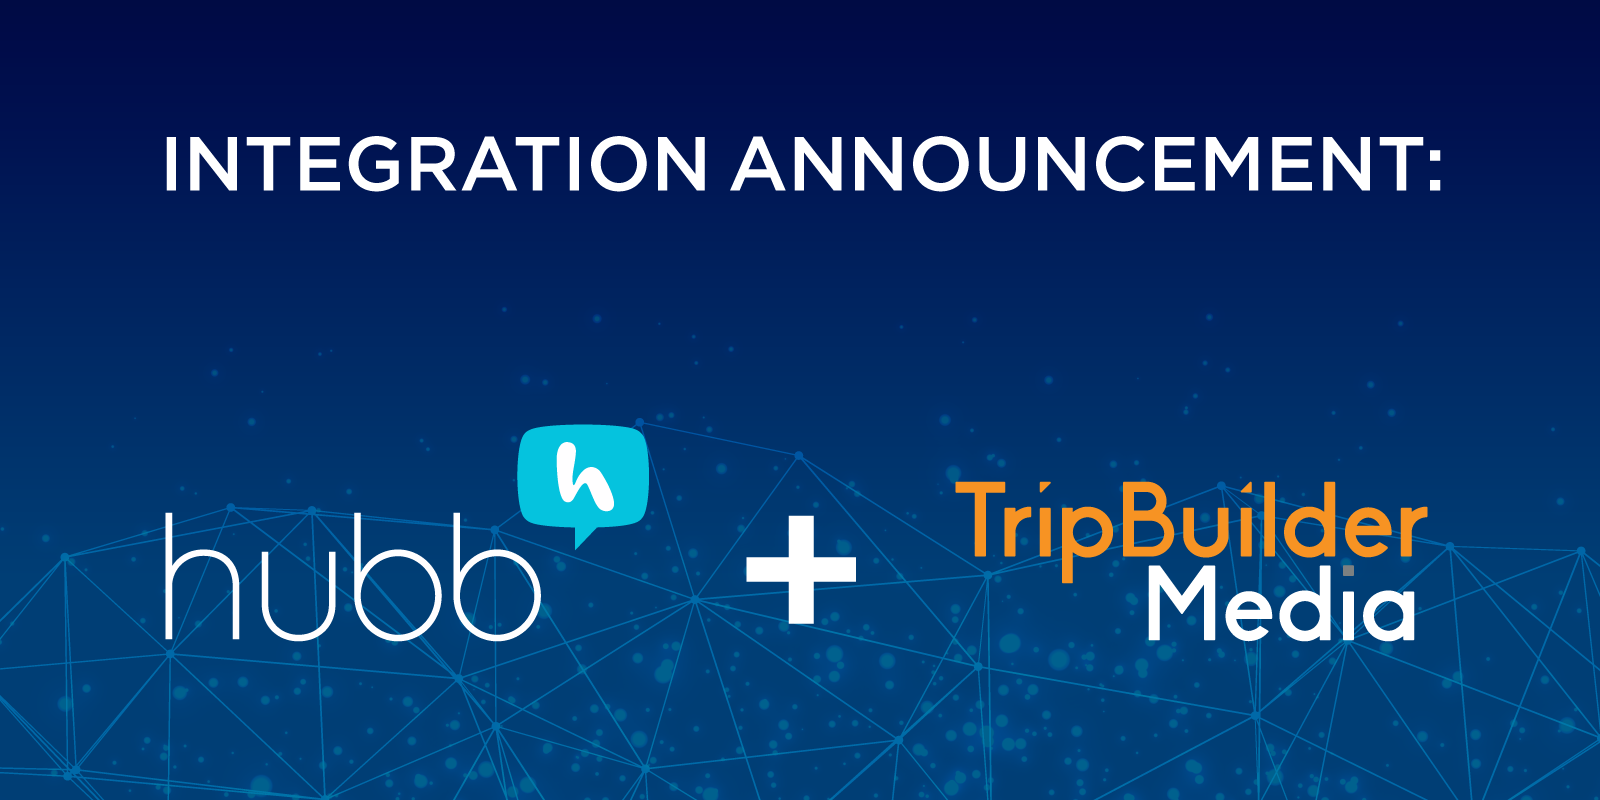 Announcing the Hubb and TripBuilder Media Integration